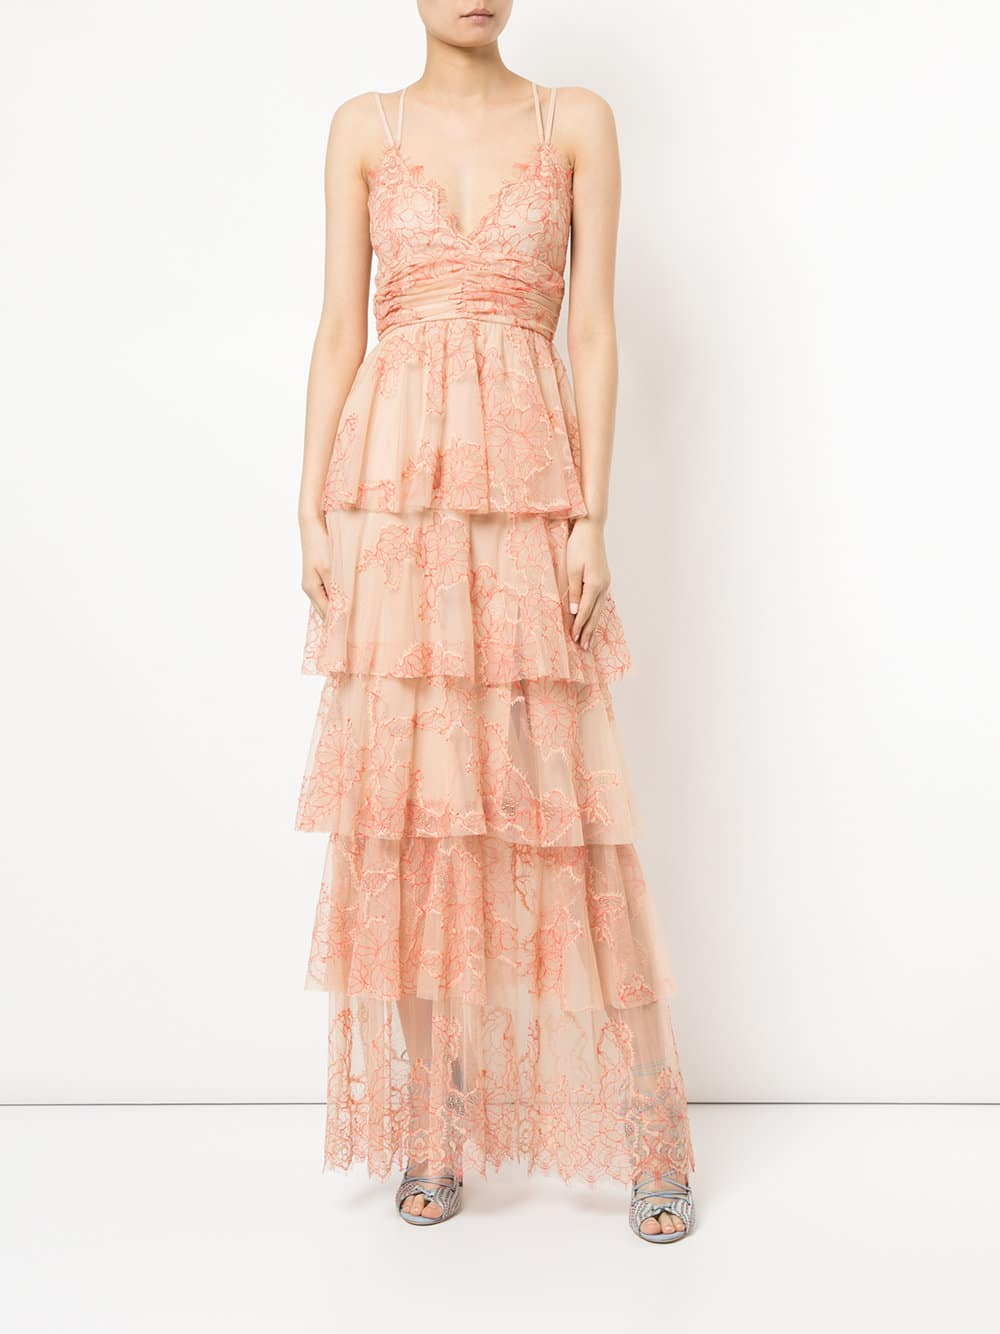 Alice Mccall Love Is Love Nude Gown We Select Dresses